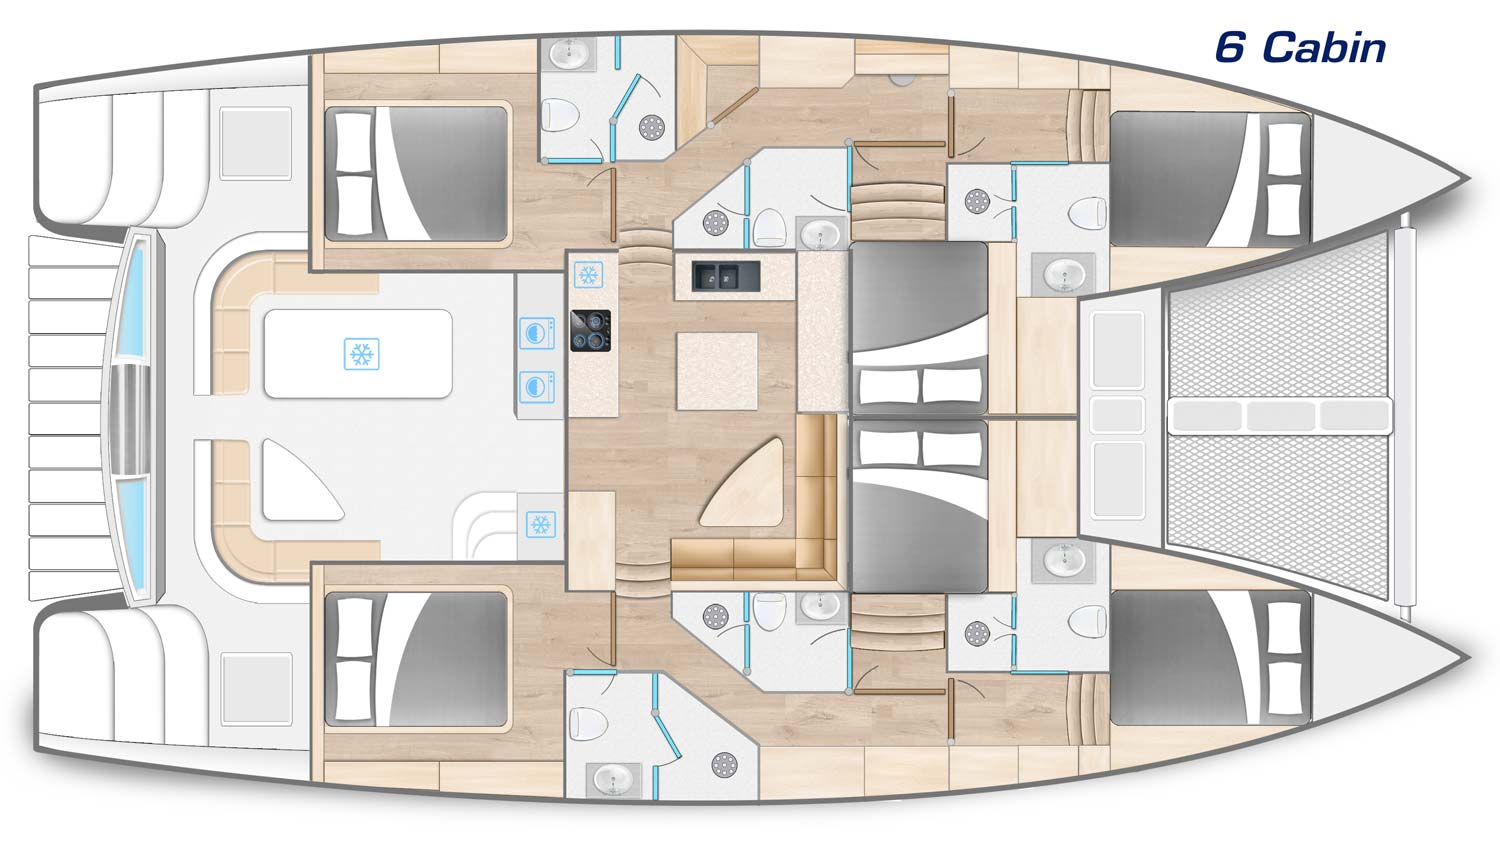 Royal Charters, Majestic 570, Cabin layout